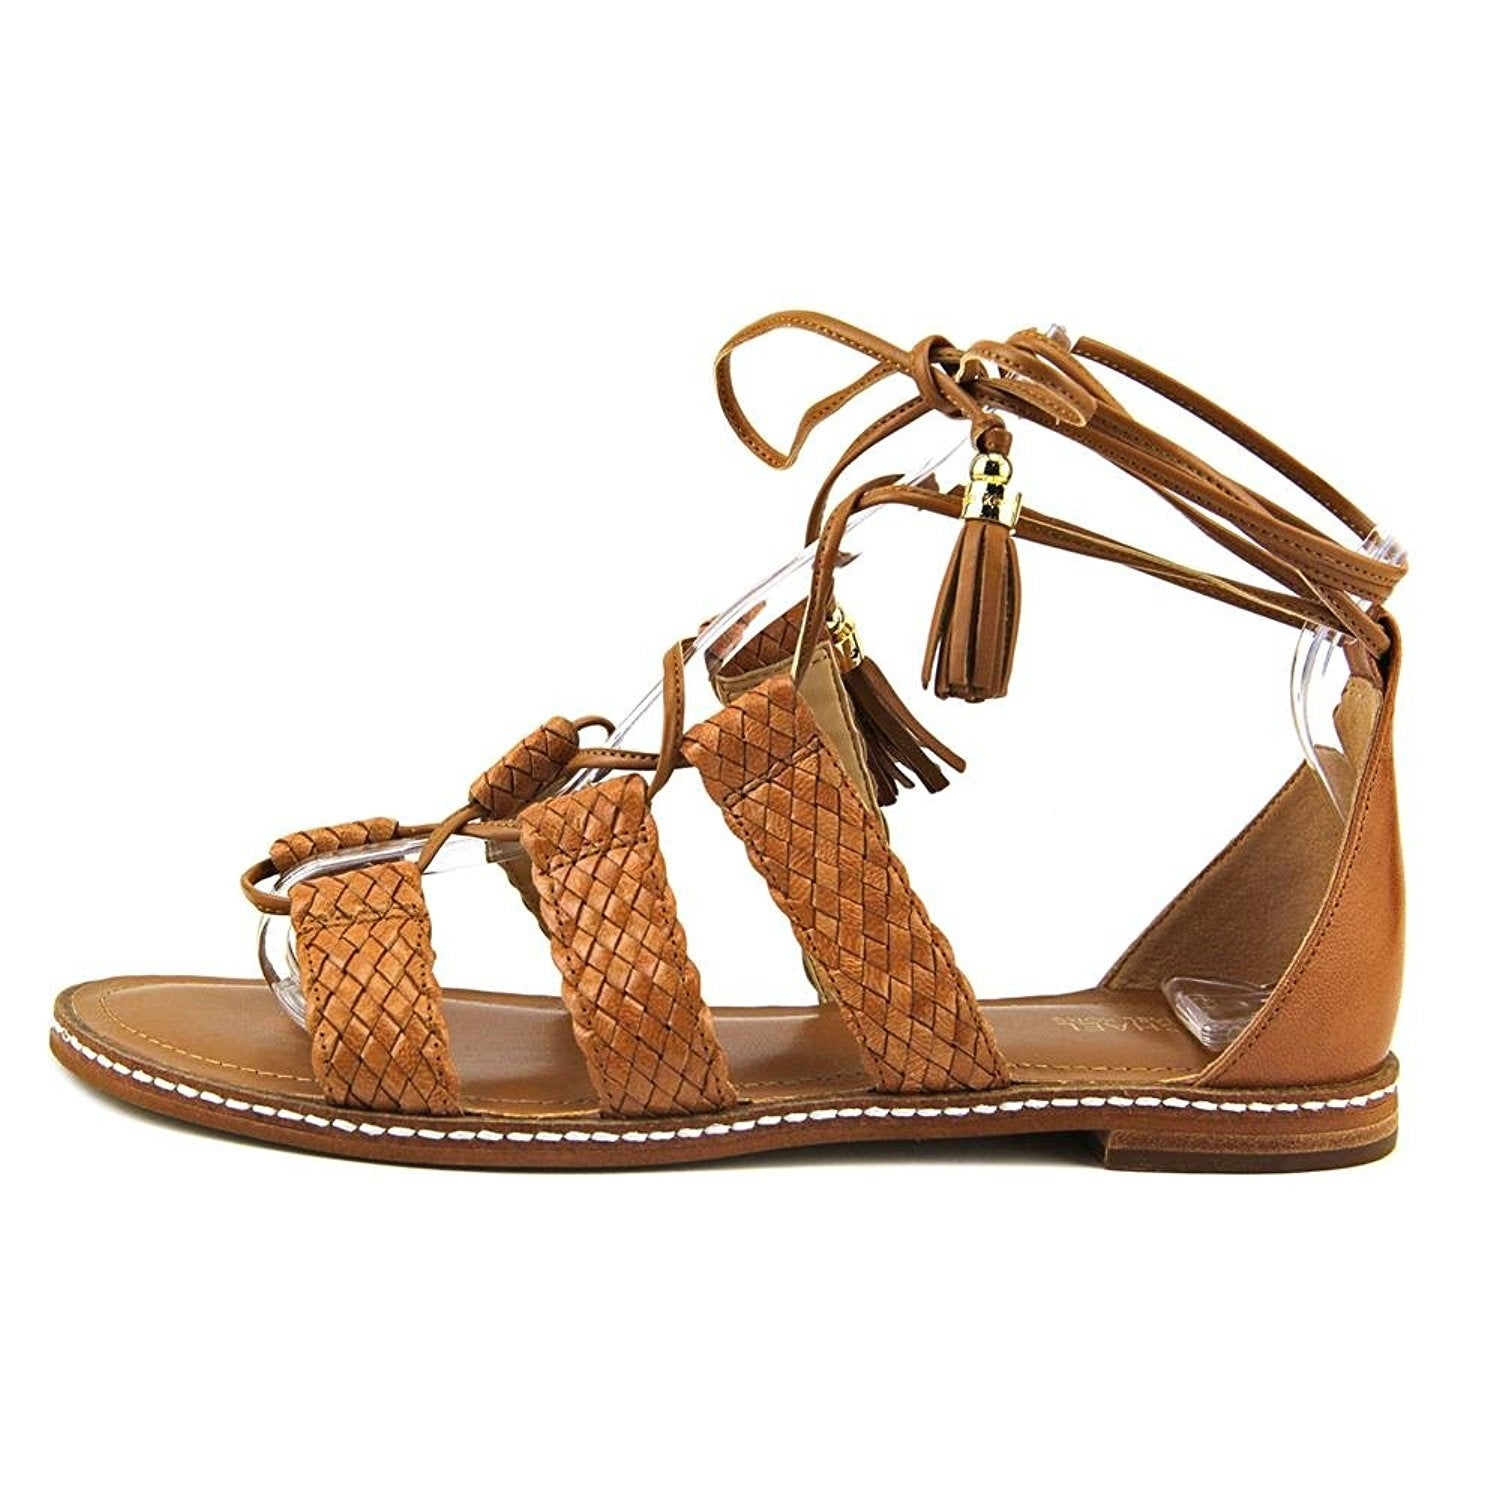 3b7fd0055354 Shop MICHAEL Michael Kors Monterey Gladiator Open Toe Leather Gladiator  Sandal - Free Shipping Today - Overstock - 20354423